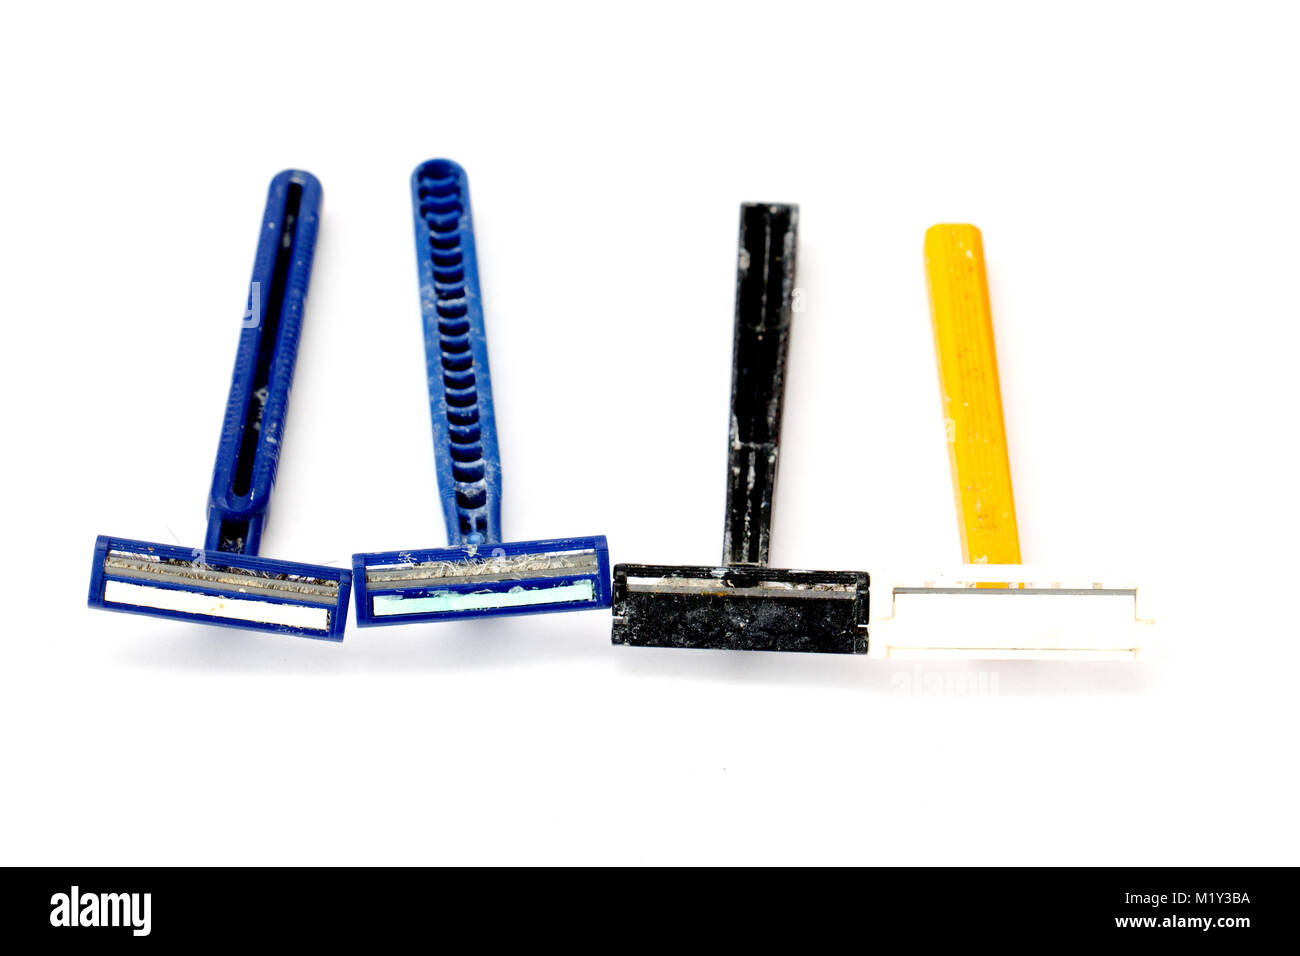 used disposable razor blade, on white background, image of a - Stock Image